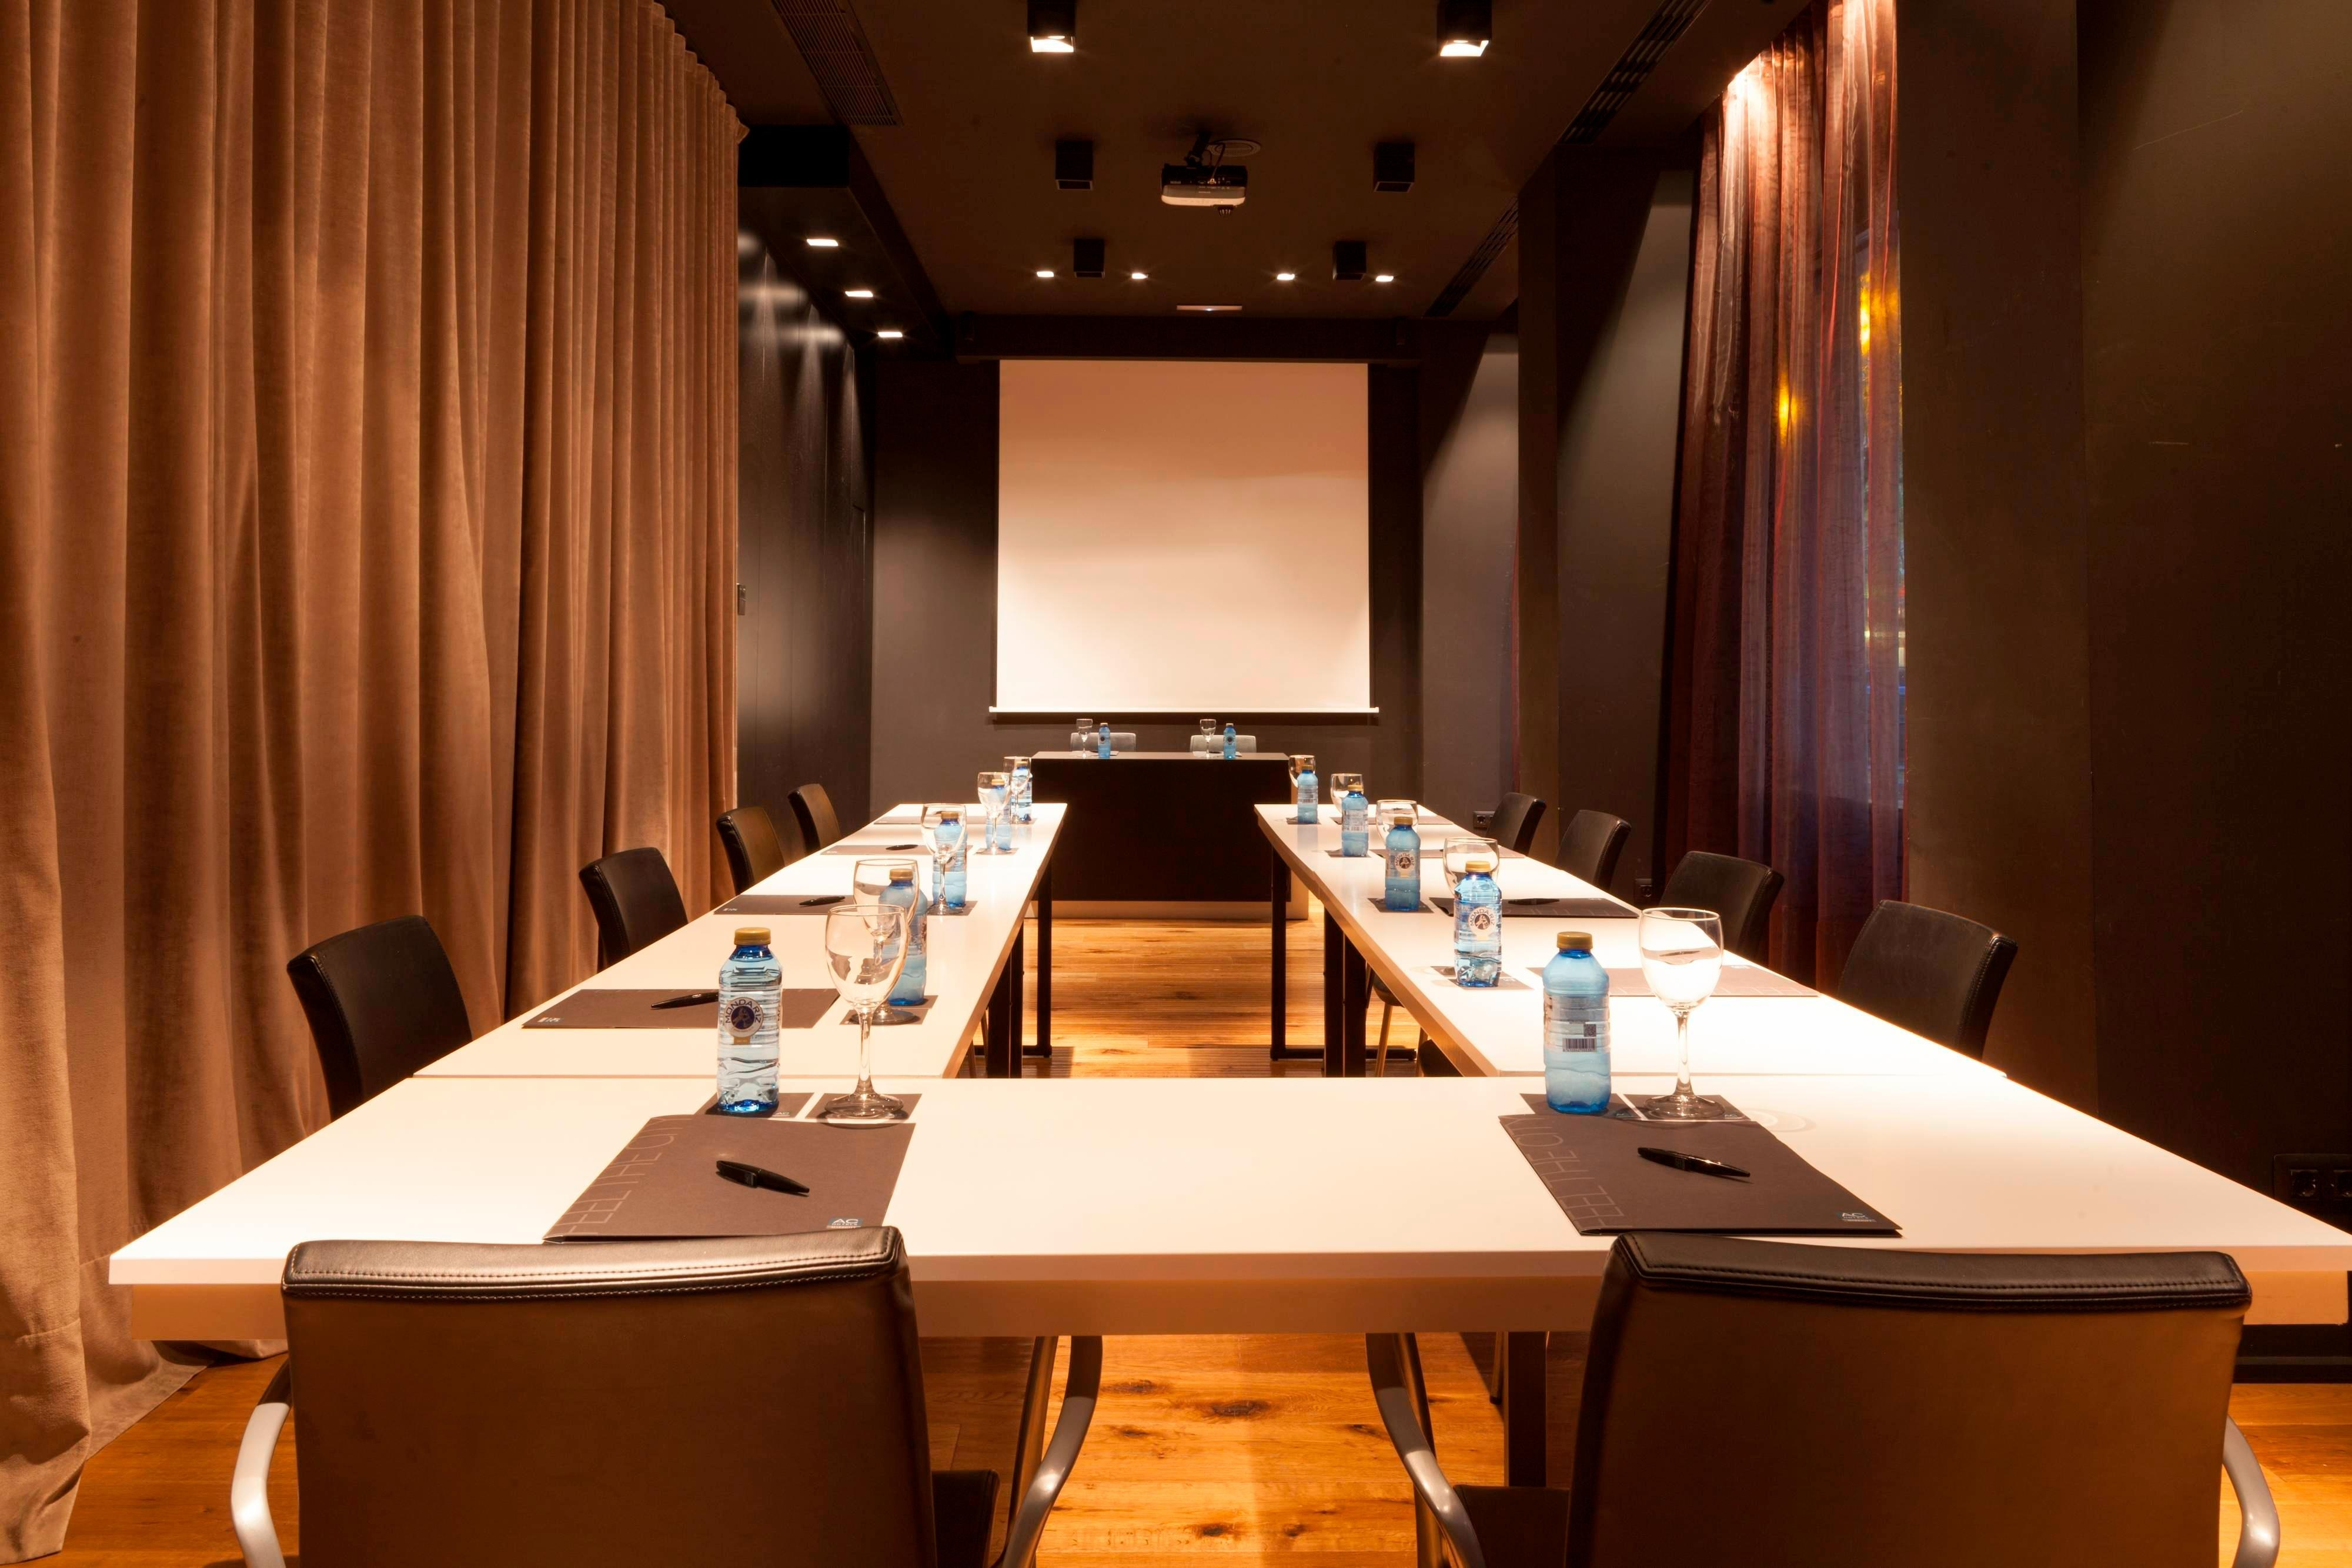 pamplona meeting room